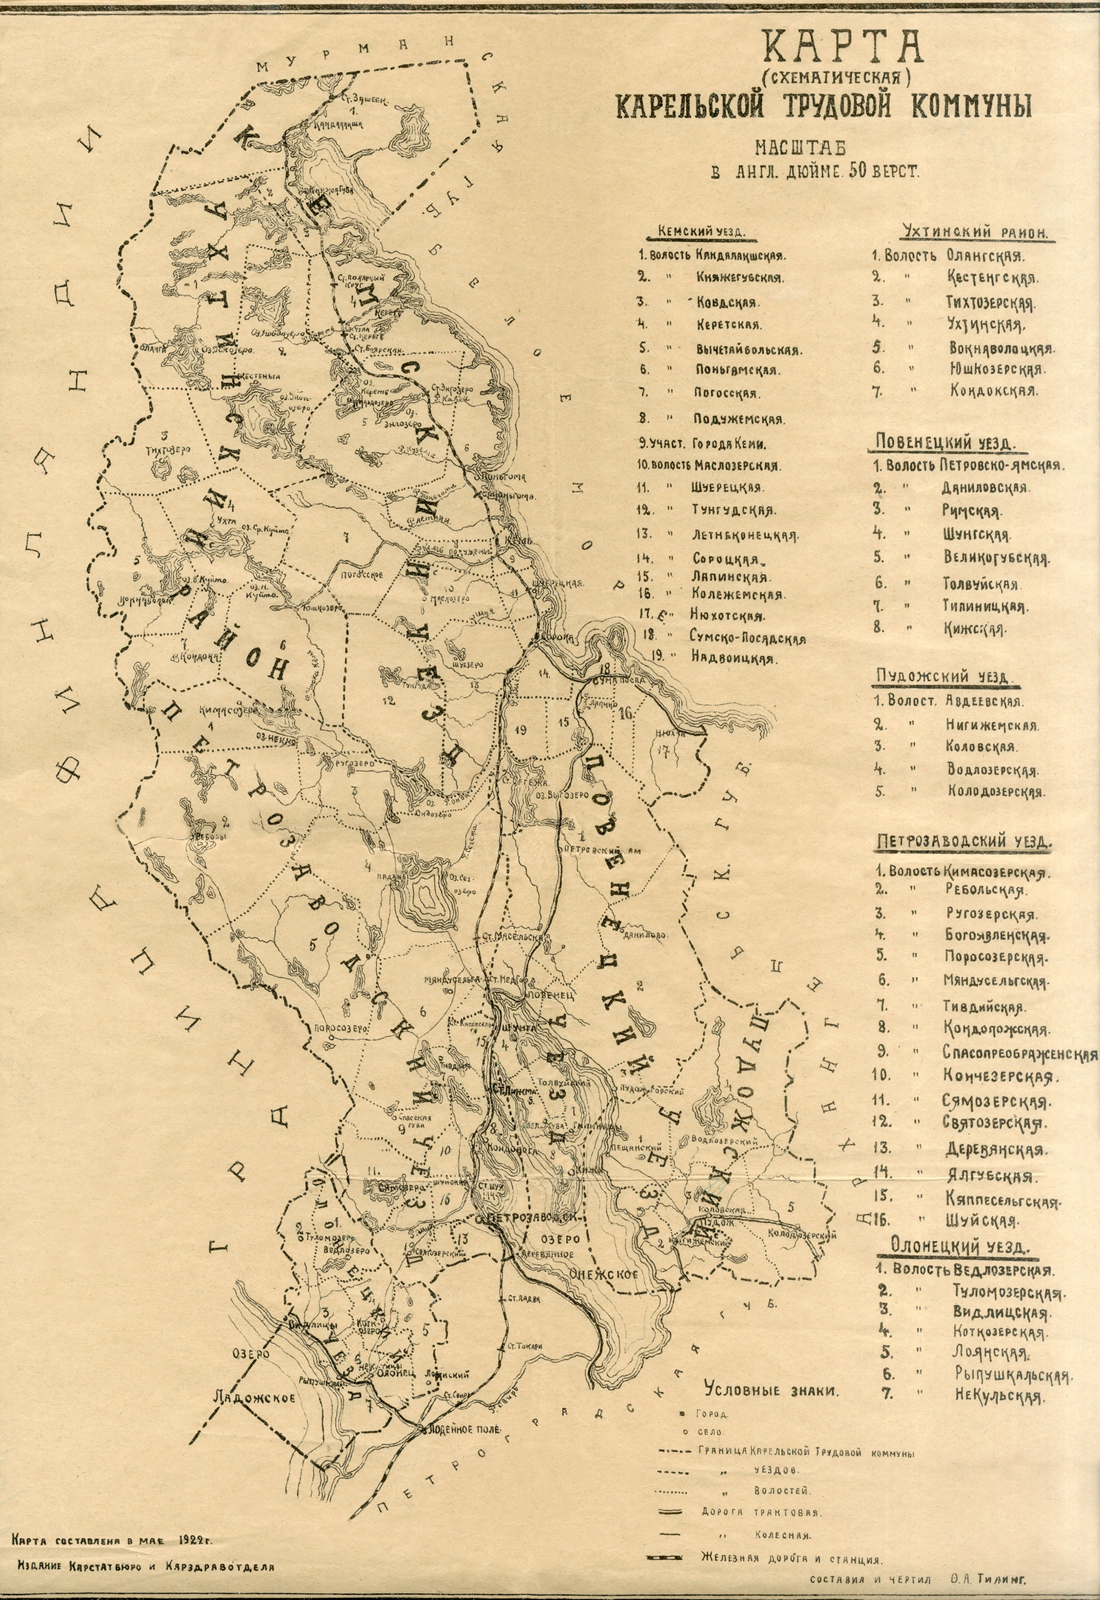 May 1922. The map of the Karelian Working Commune